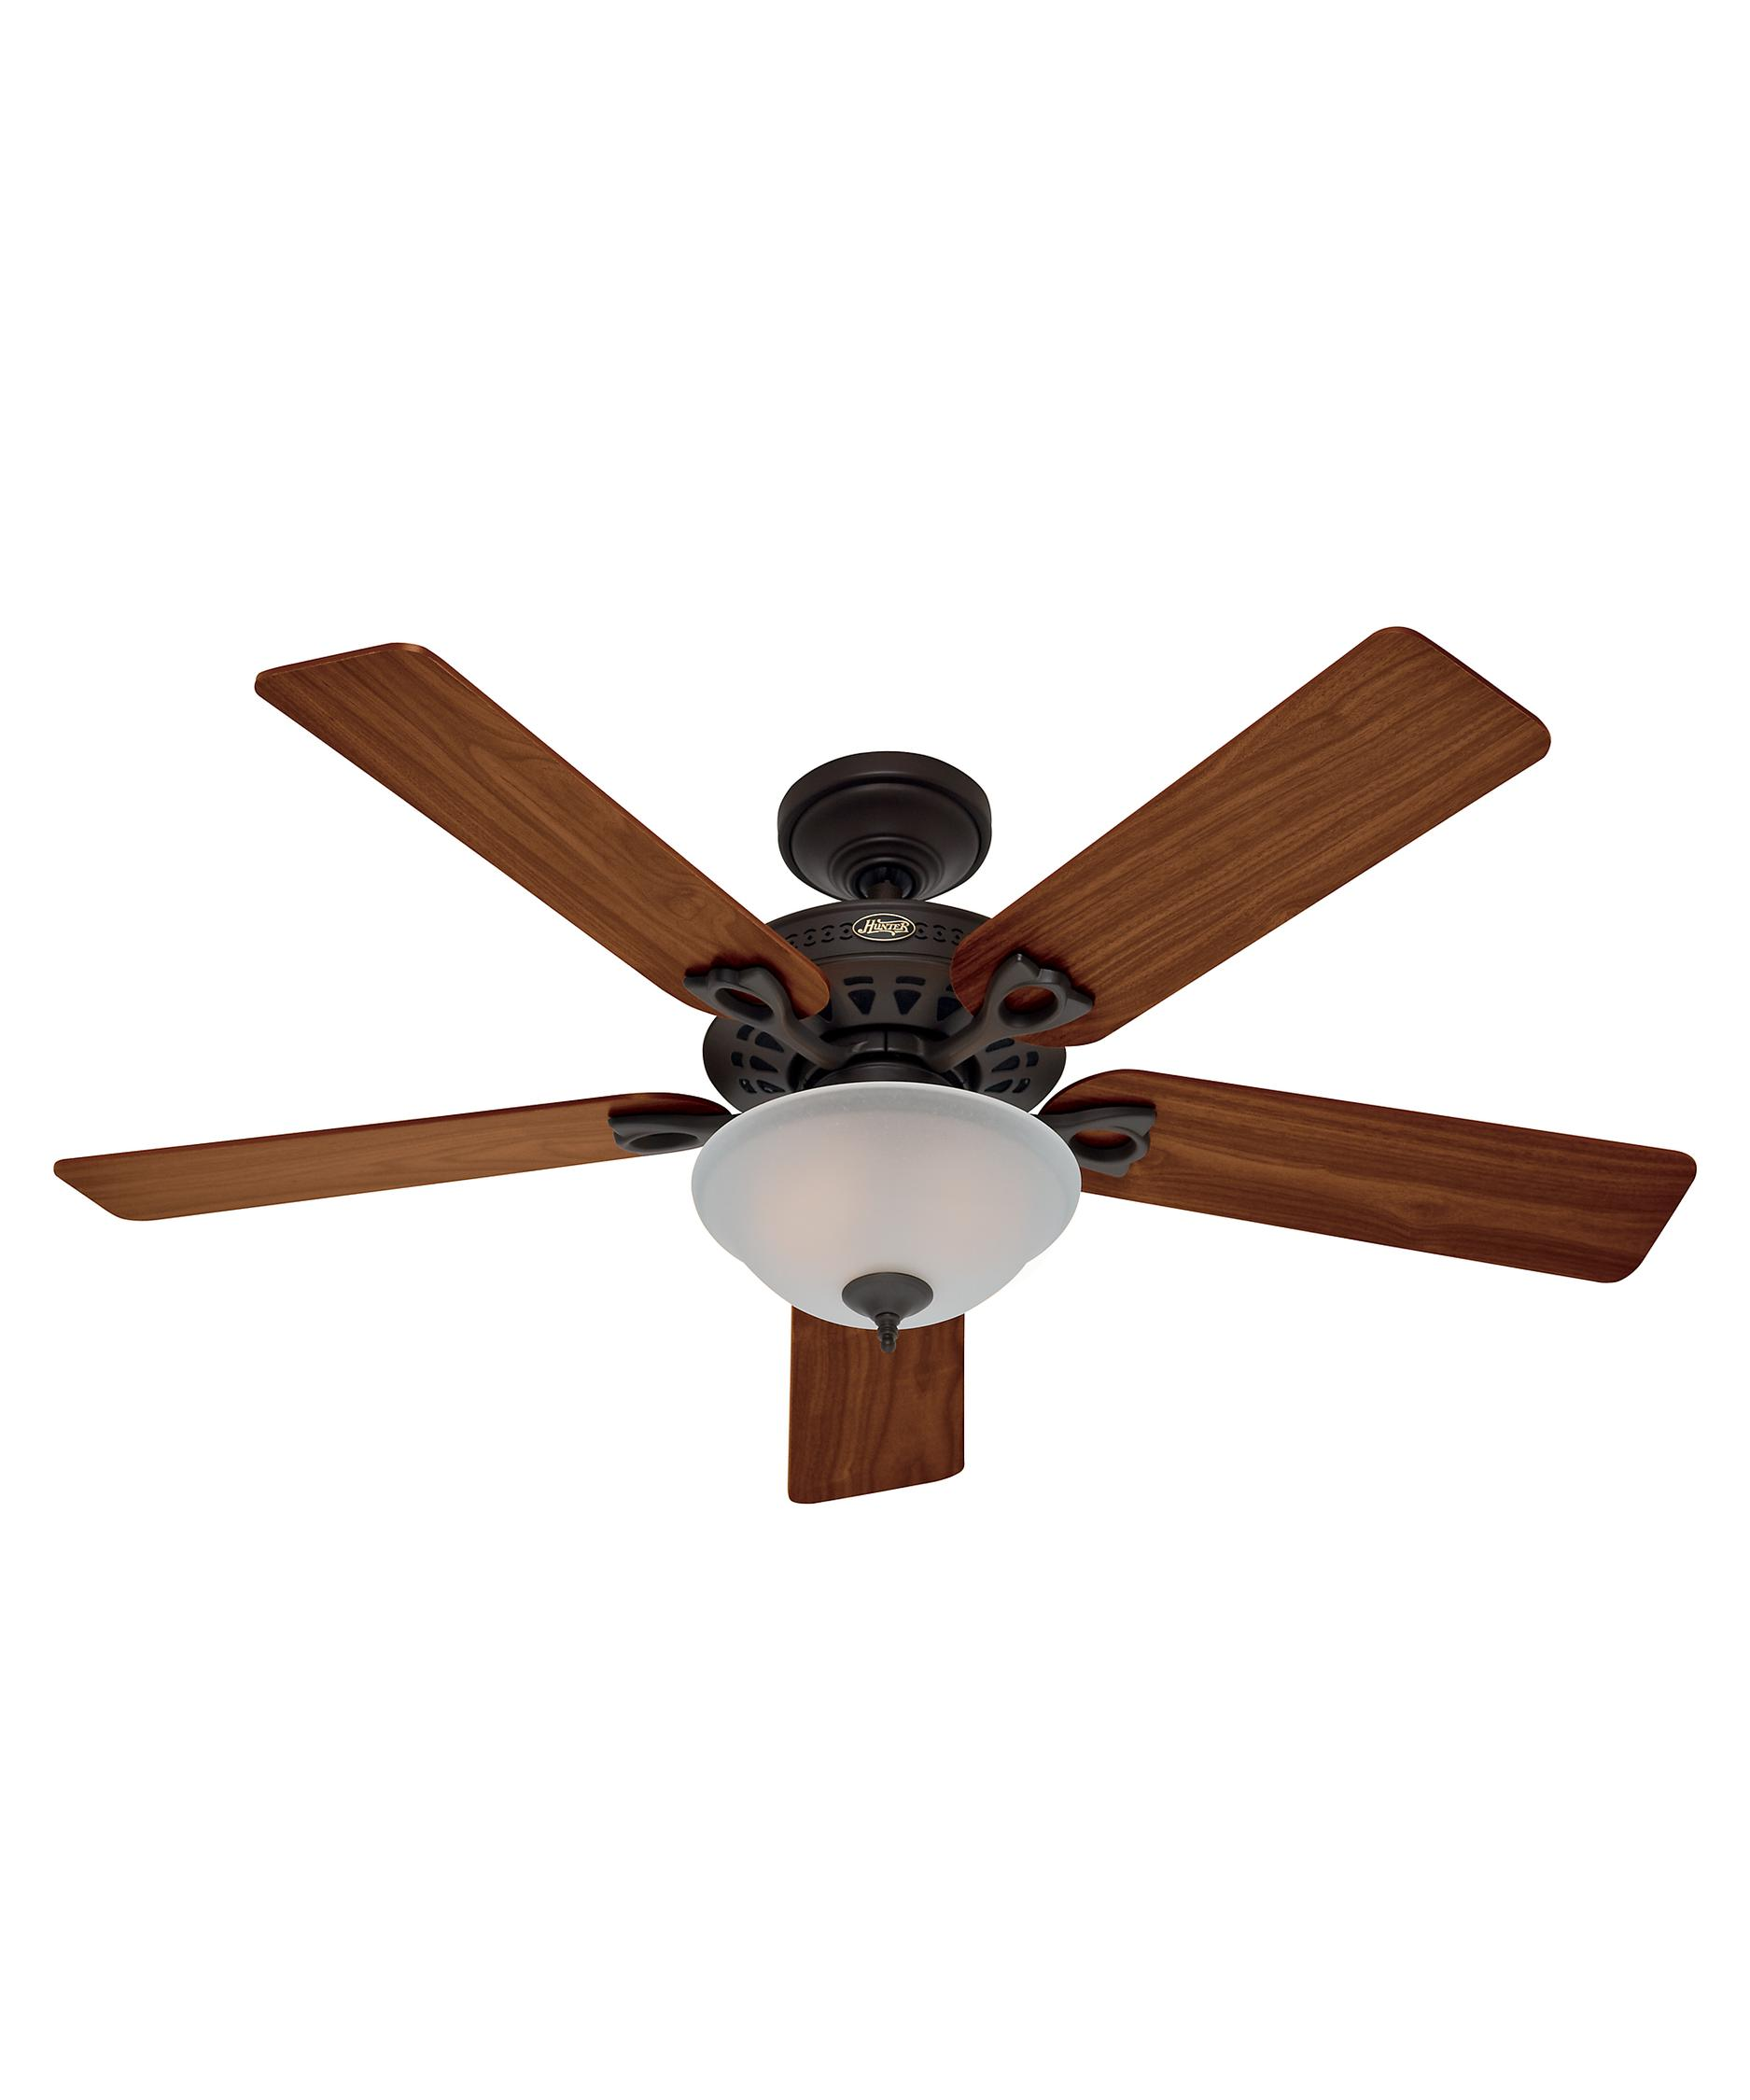 Murray Feiss Ceiling Fan Light Kit: Hunter Fan 53057 Astoria 52 Inch Ceiling Fan With Light